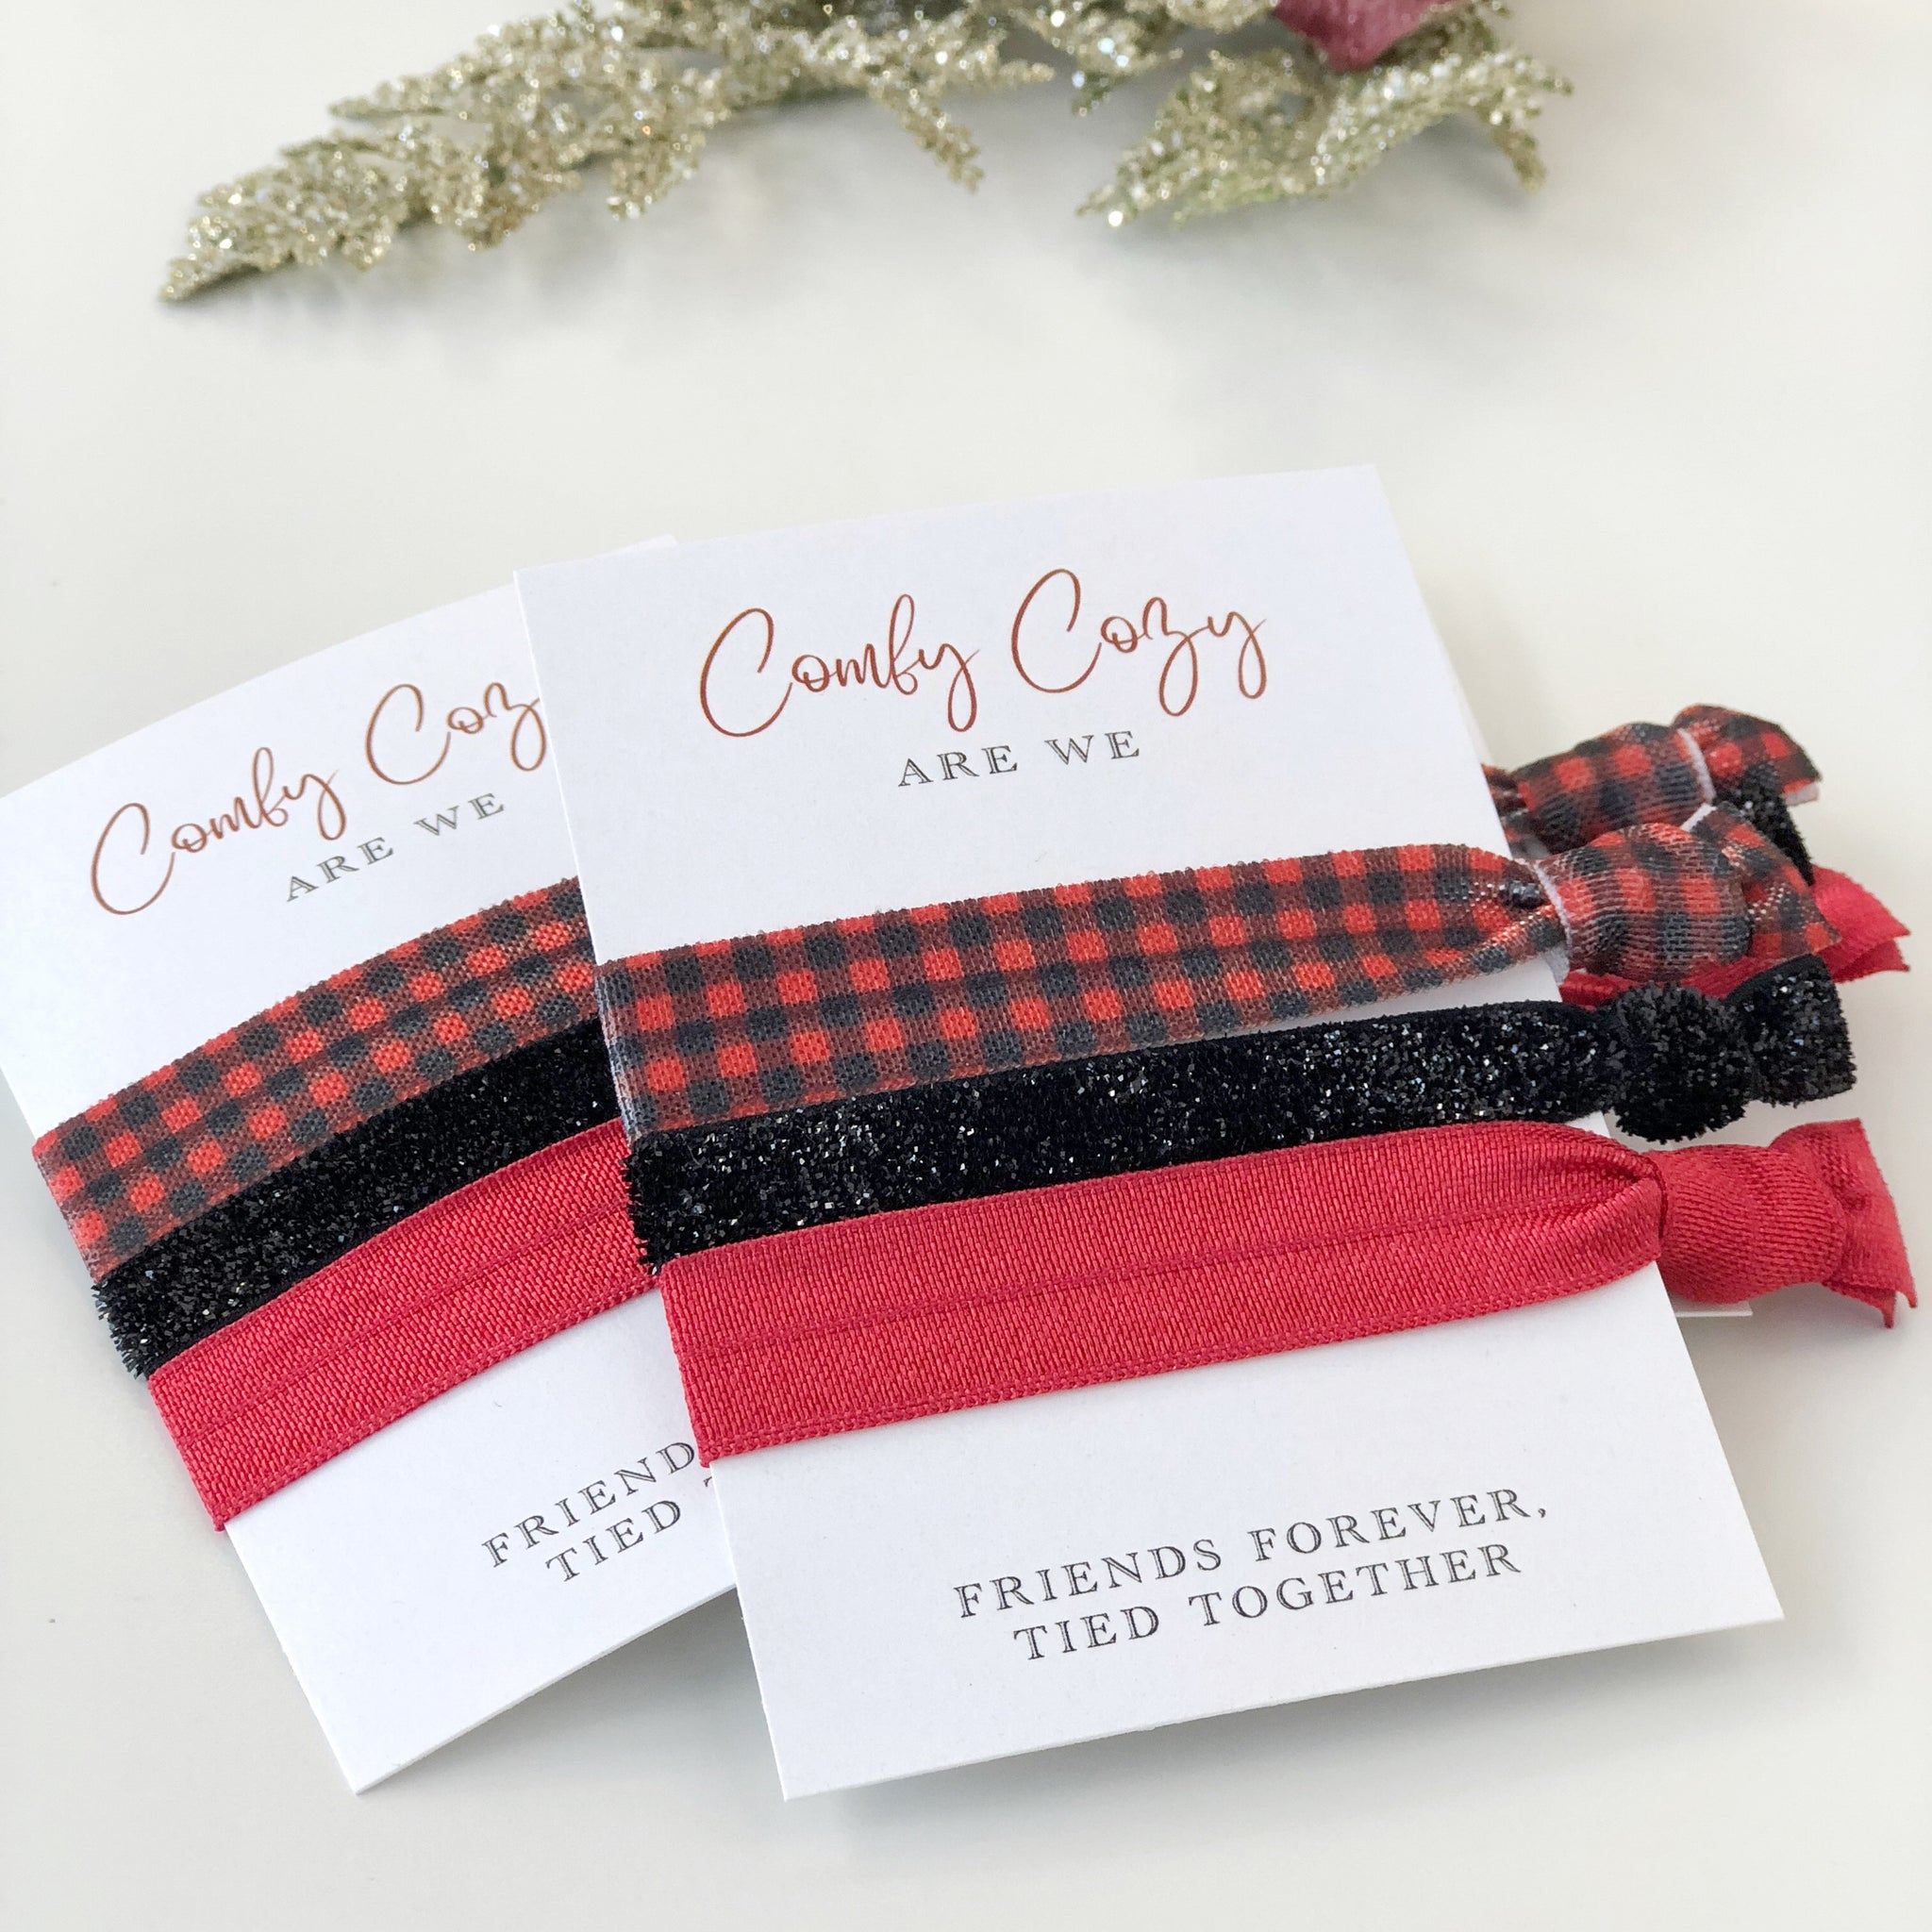 Buffalo Plaid Christmas Party Favors - Hair Tie Gifts for Friends - Stocking Stuffers - @PlumPolkaDot